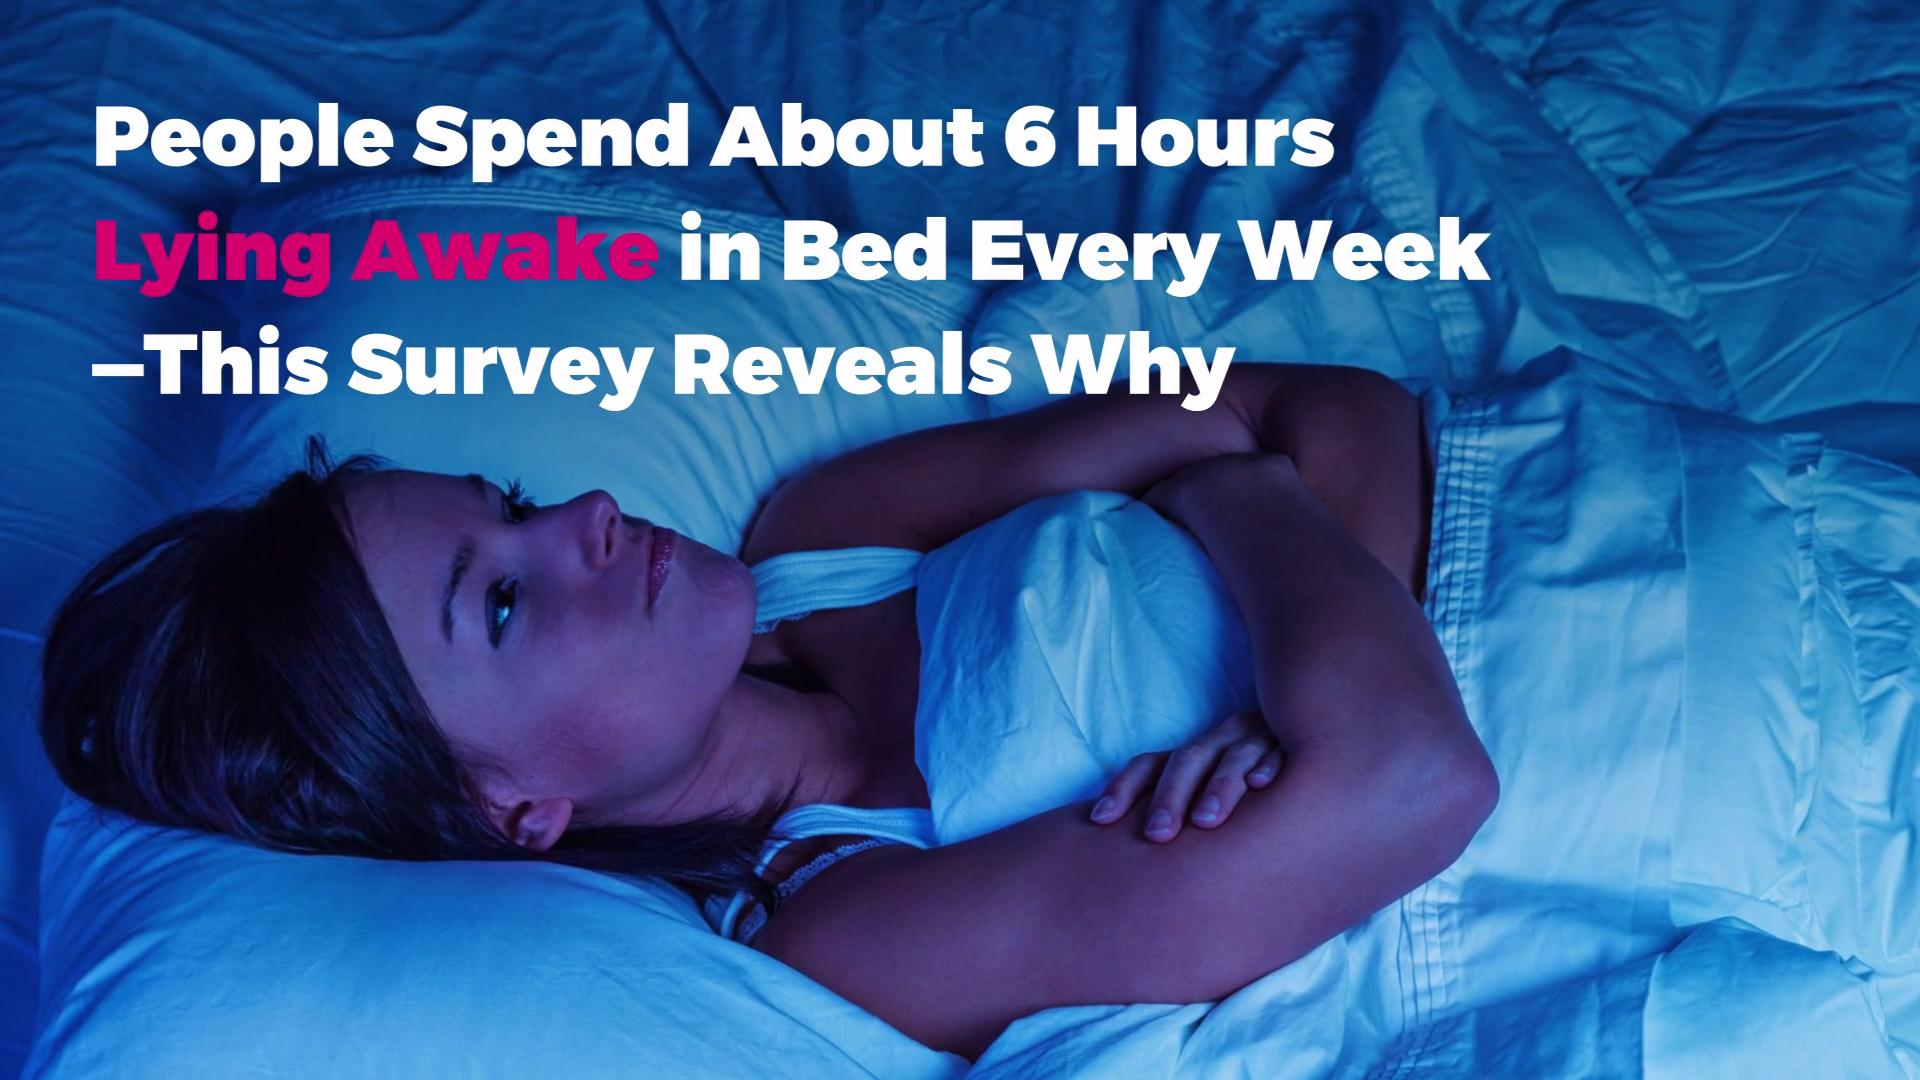 People Spend About 6 Hours Lying Awake in Bed Every Week—This Survey Reveals Why